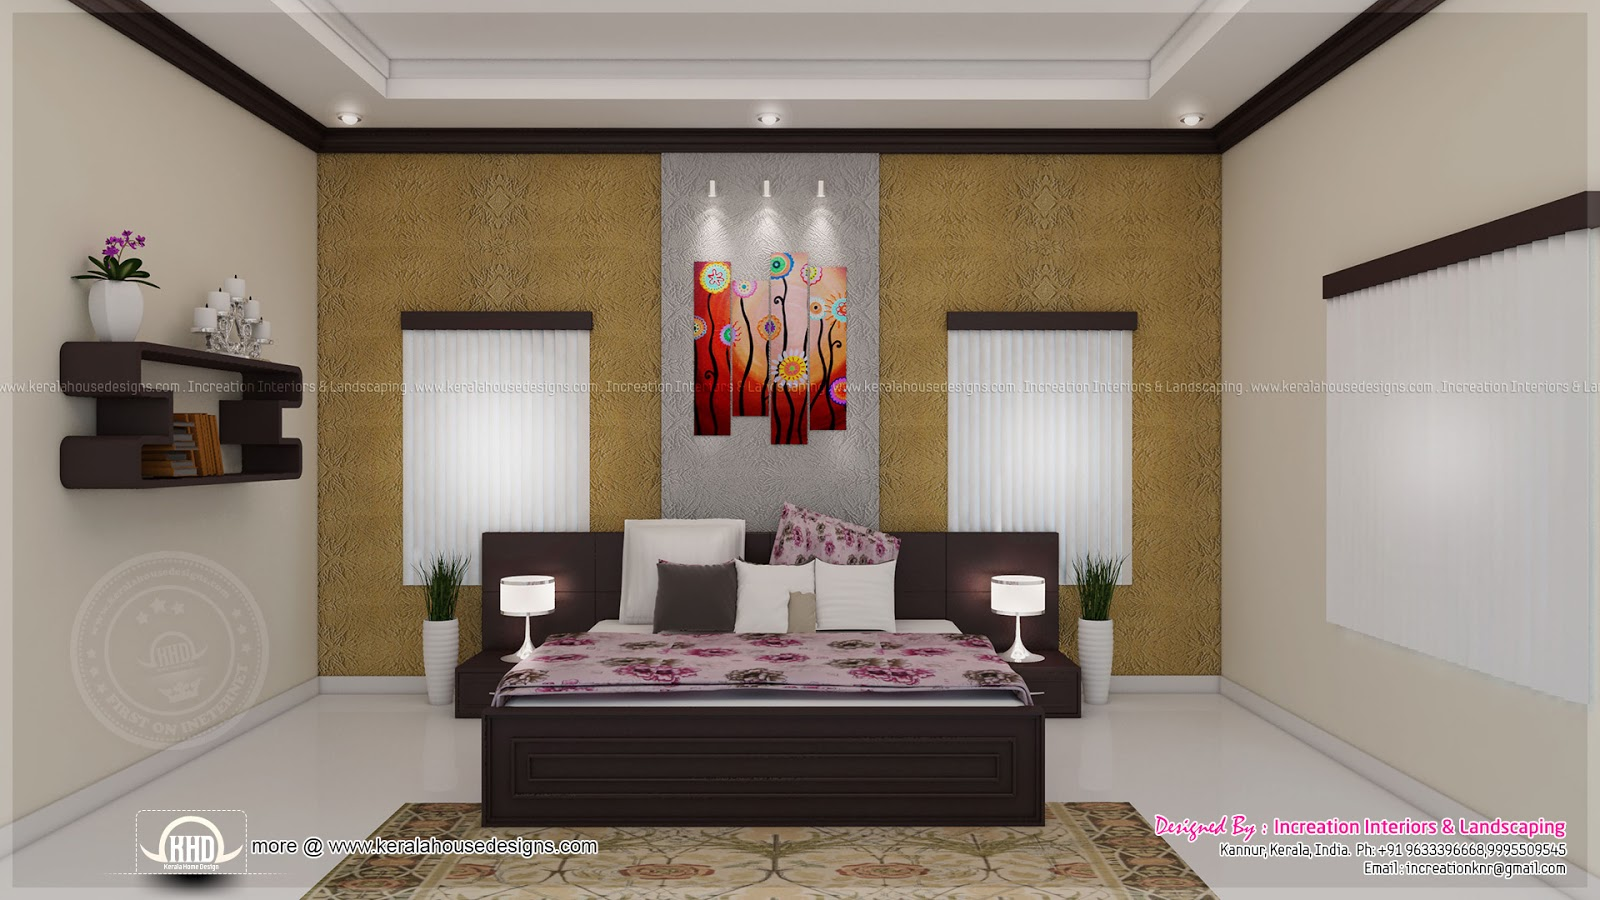 House interior ideas in 3d rendering kerala home design for Home interior design photo gallery